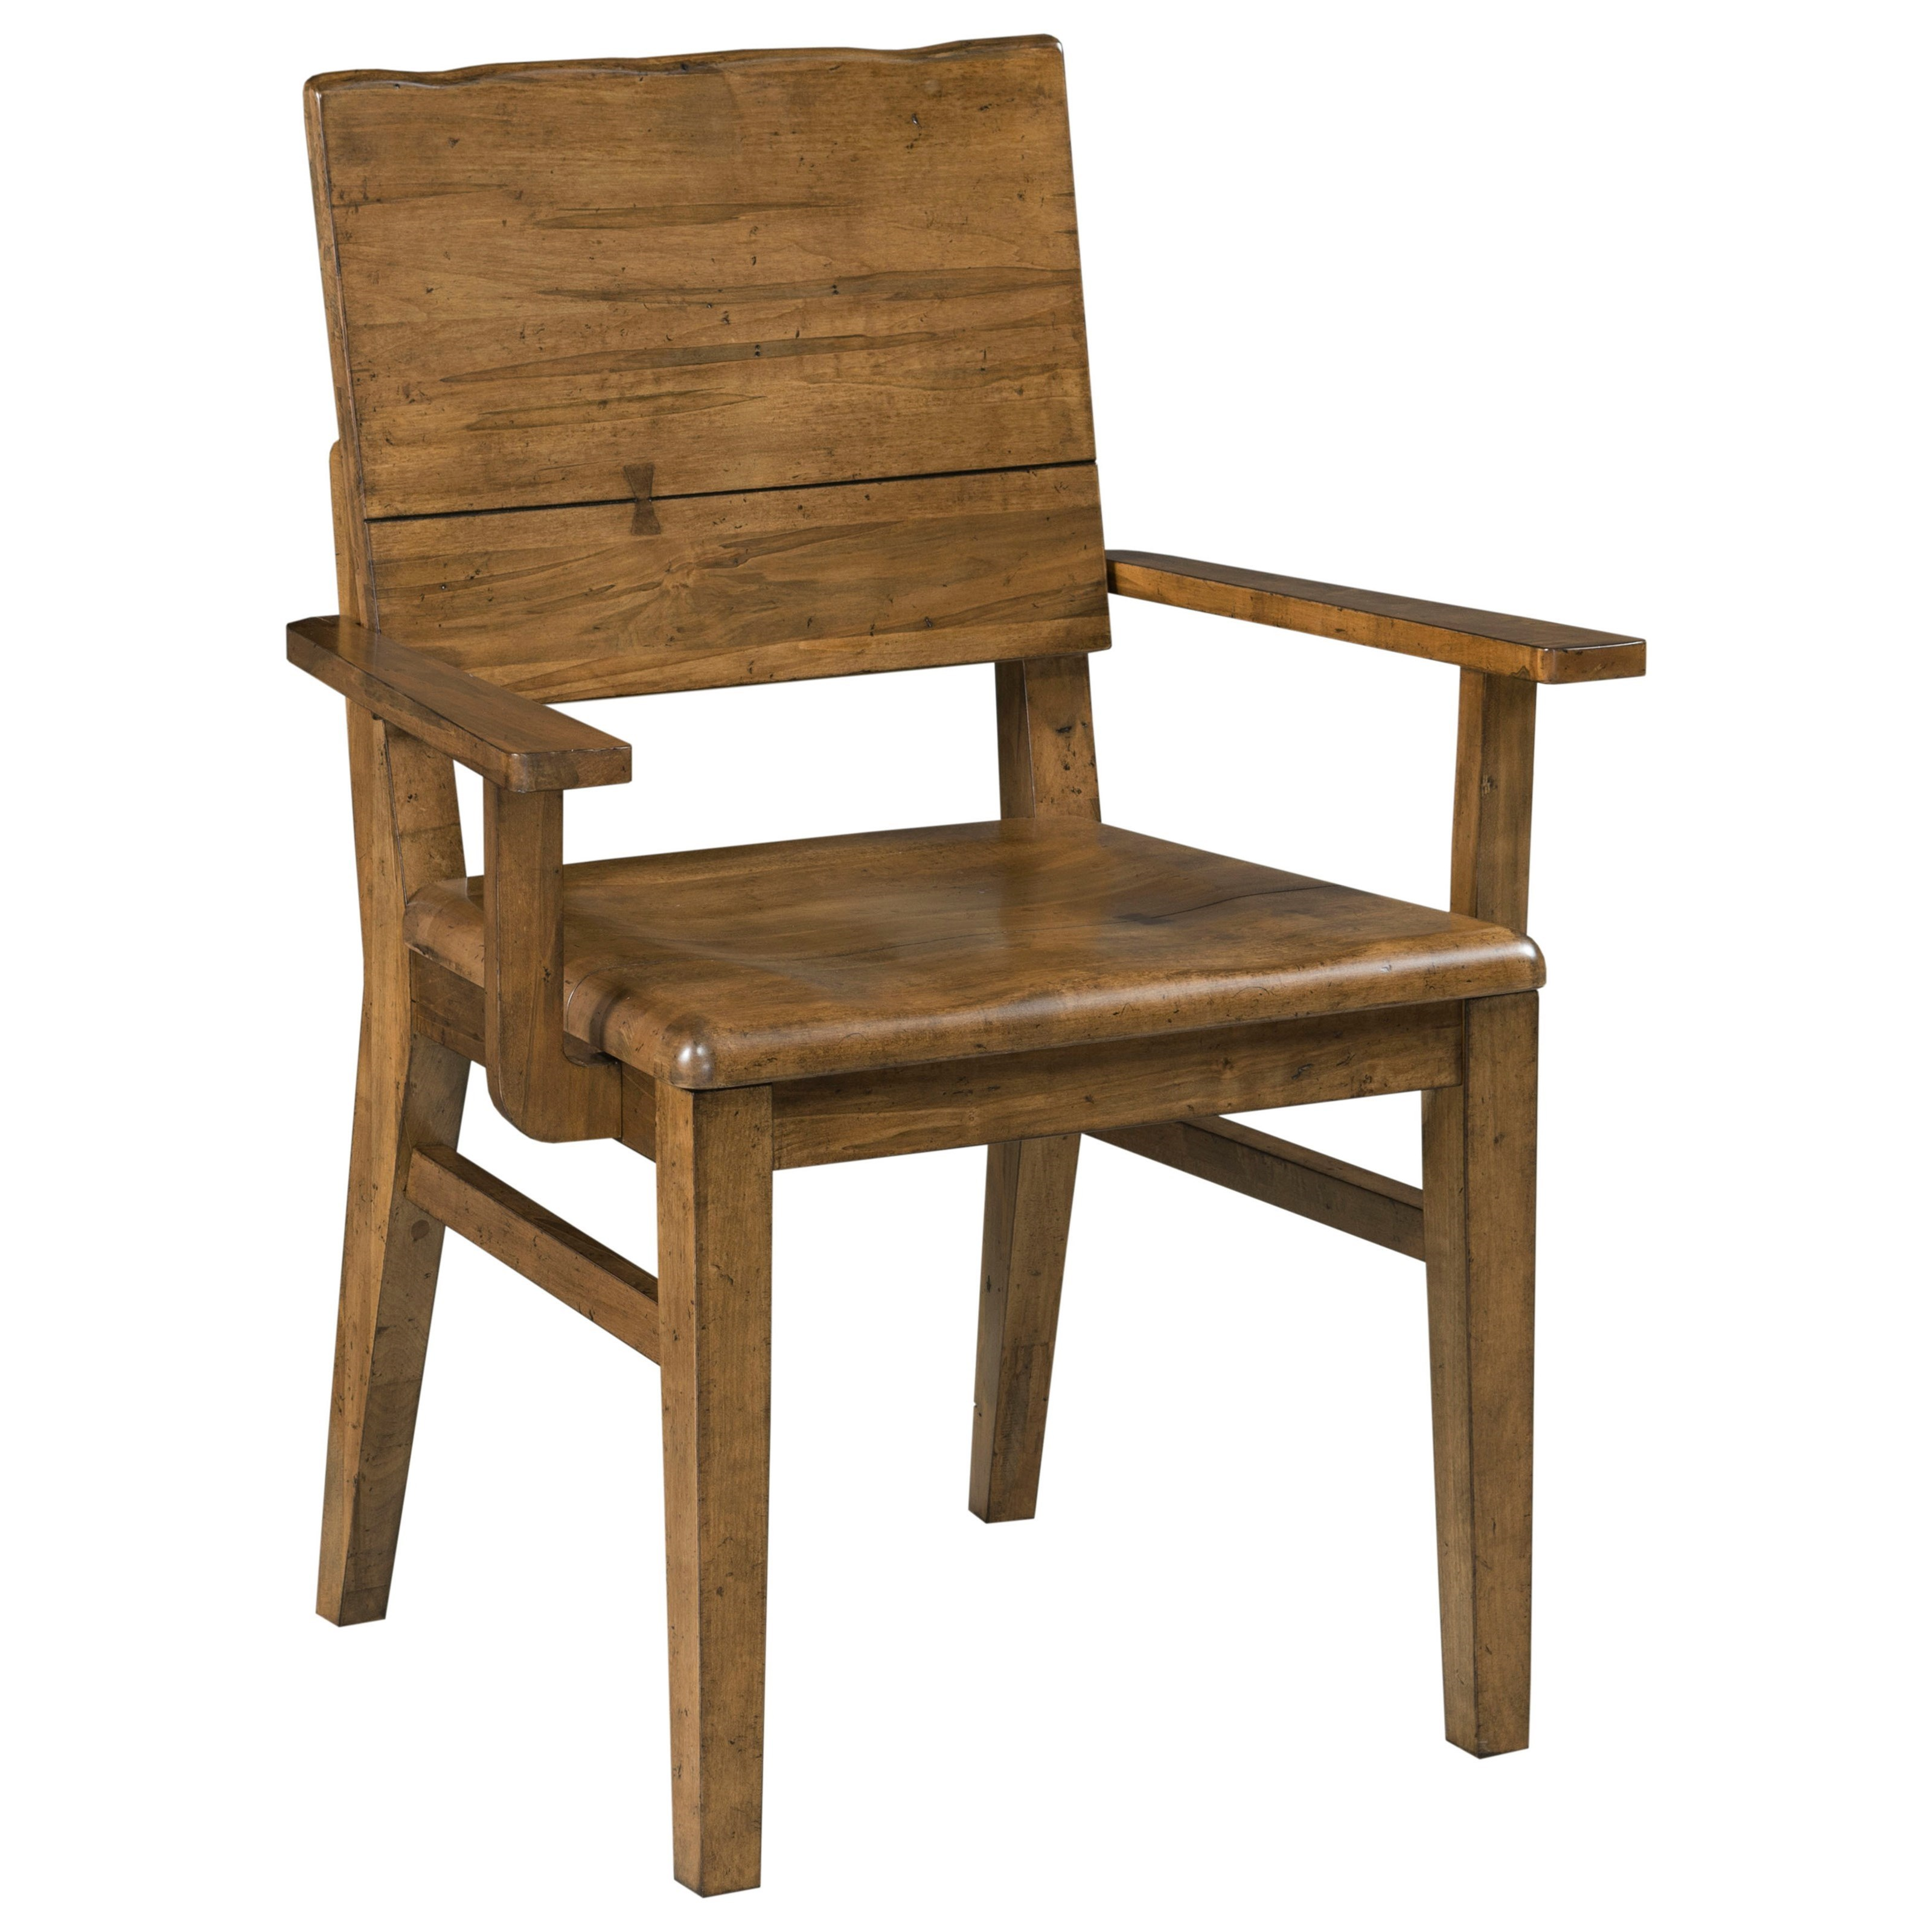 Woodcrafter's Arm Chair